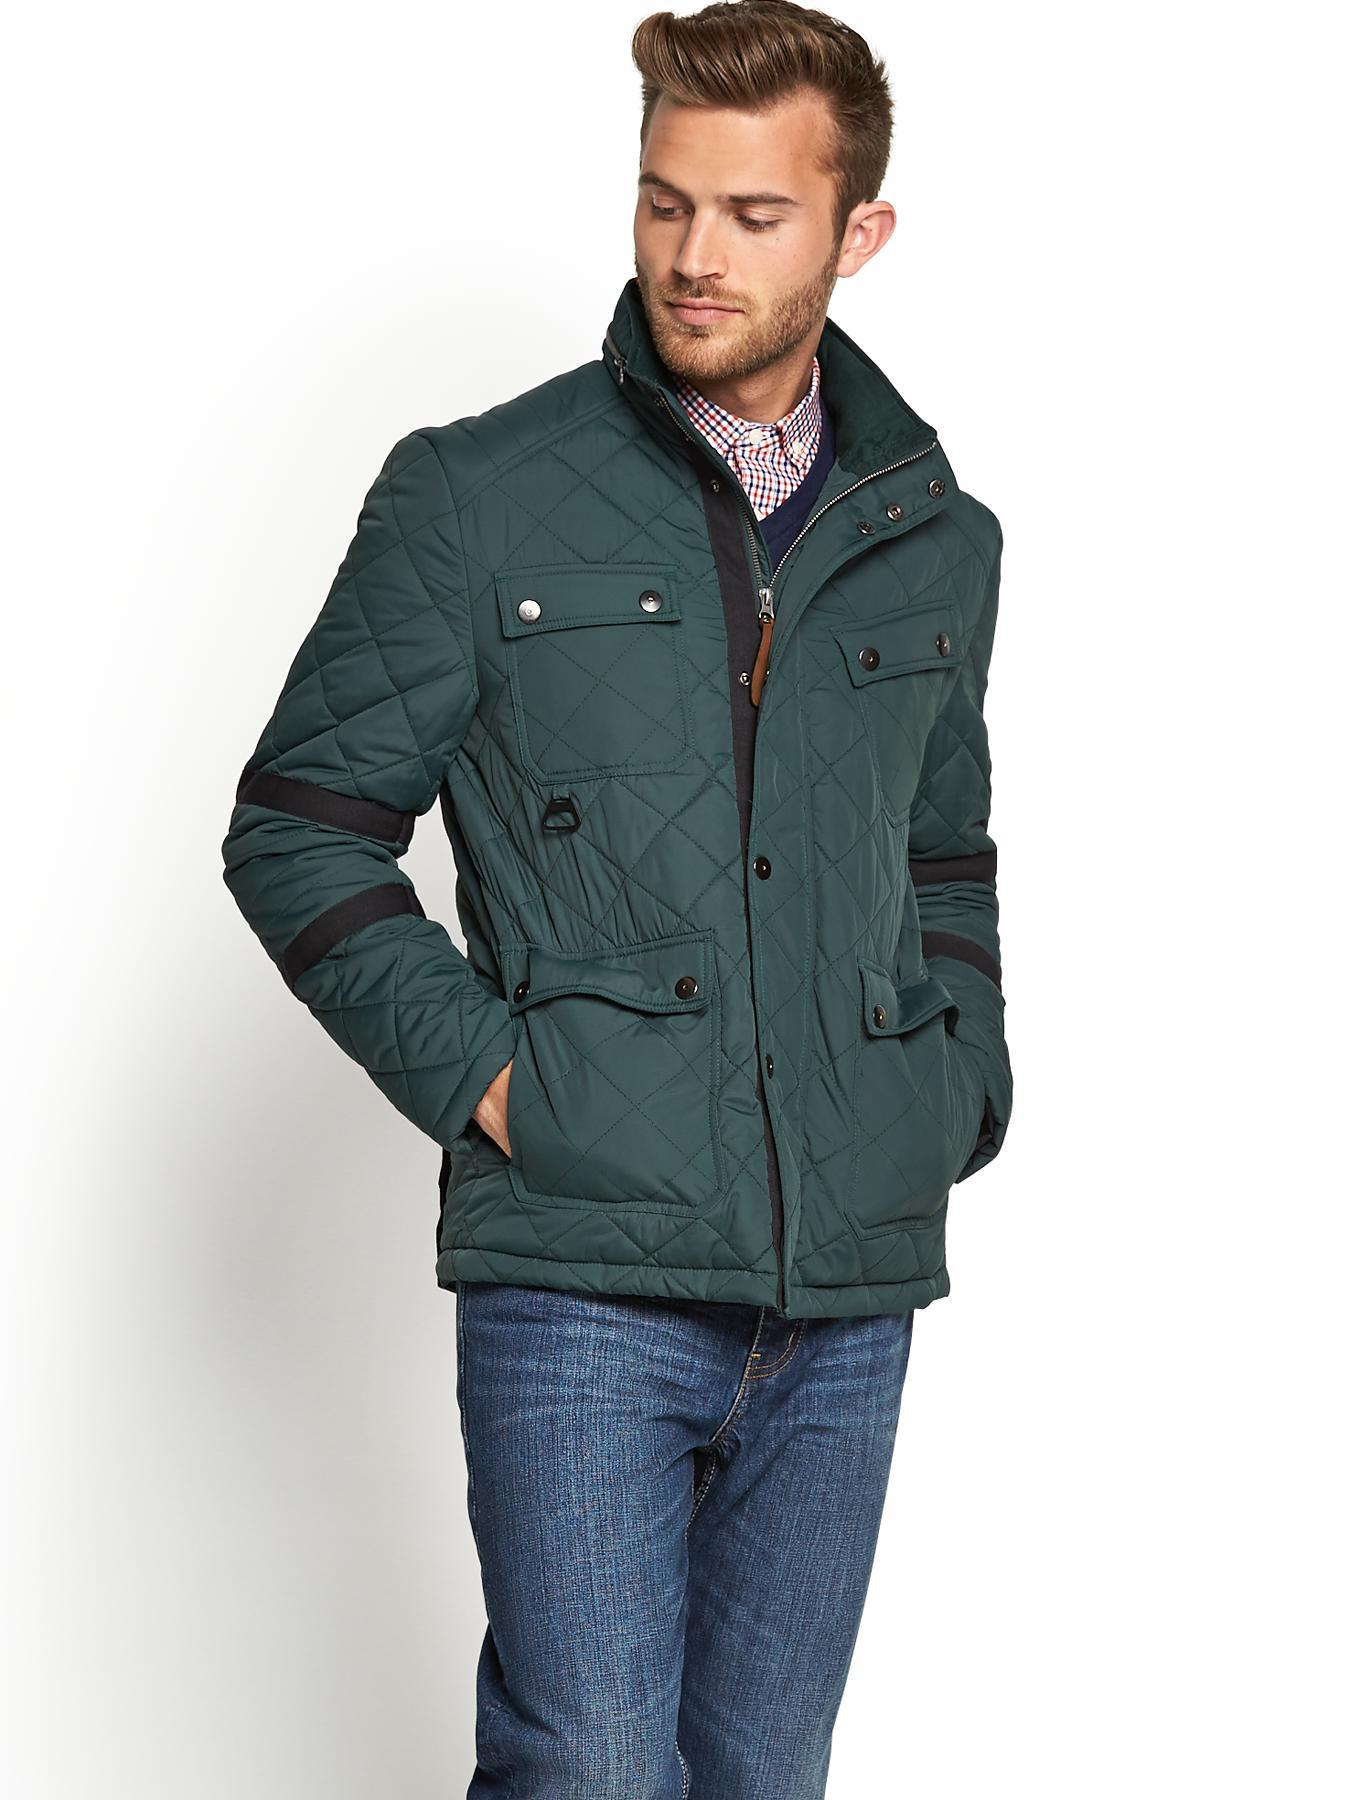 Mens Quilted Four Pocket Jacket, Green